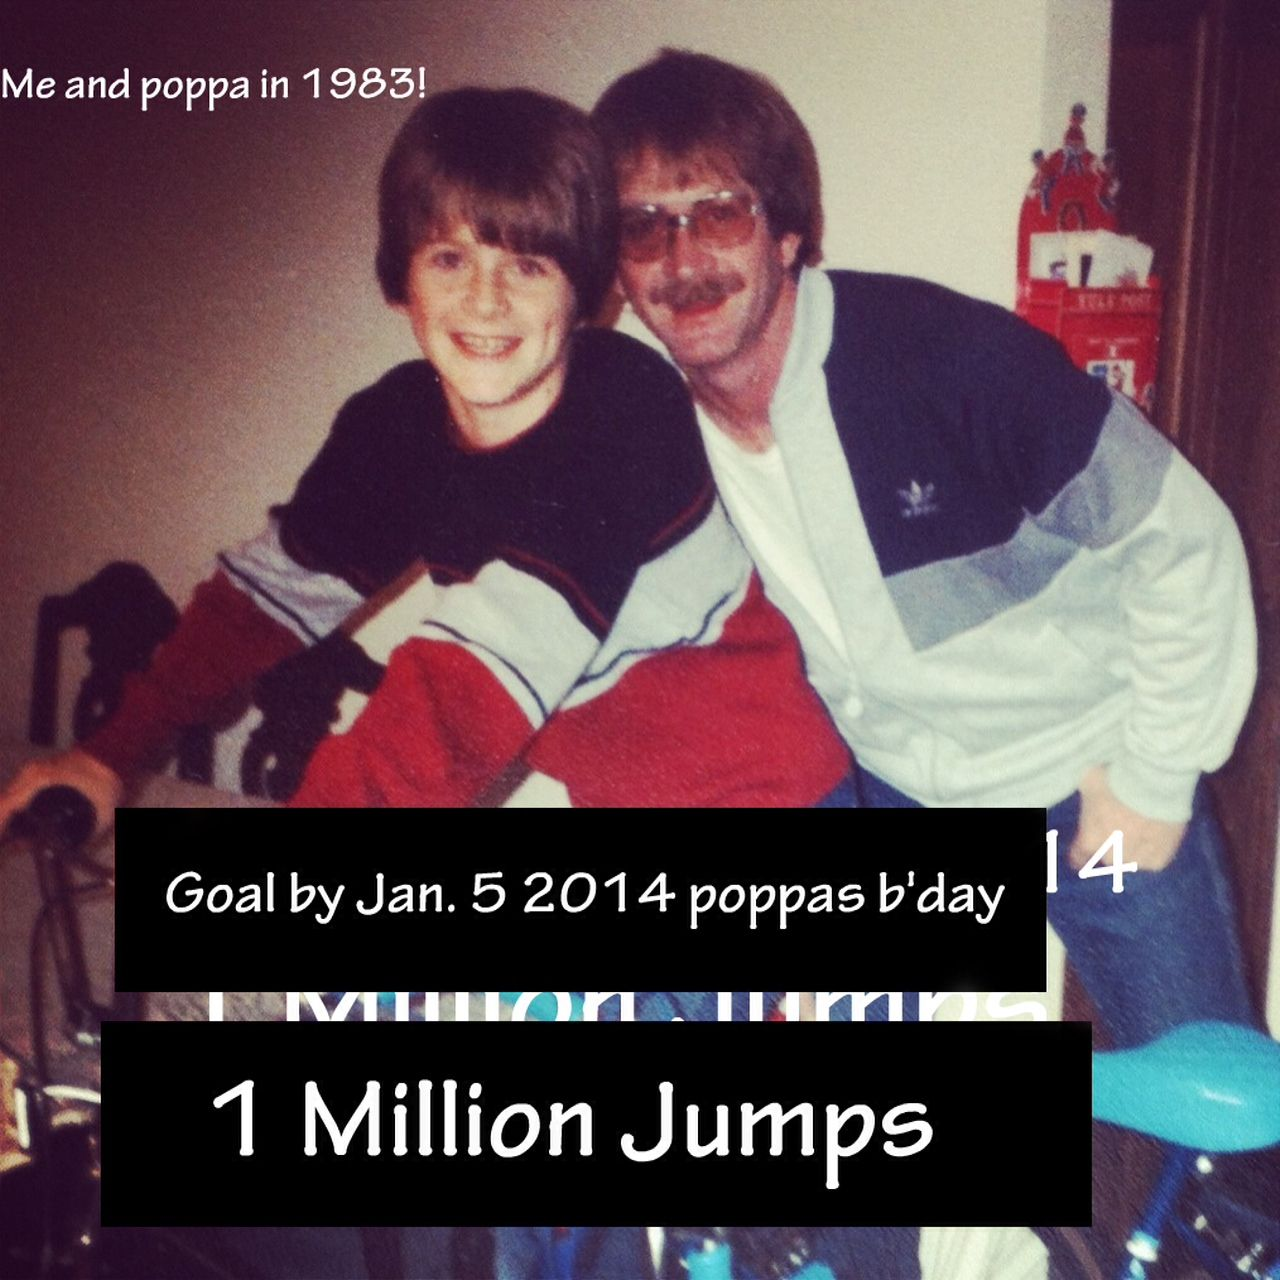 This is me and my father in 1983, he died last year of lung cancer and he inspired me to bring awareness to nutrition and cancer prevention. Please like FB or follow me on twitter for jumps. 1 like =1 jump, 1 follow = 1 jump, my goal is 1 million jumps  by Jan 5th 2014, his bday. I will post video of me jumping all over L.A. on my Facebook page.